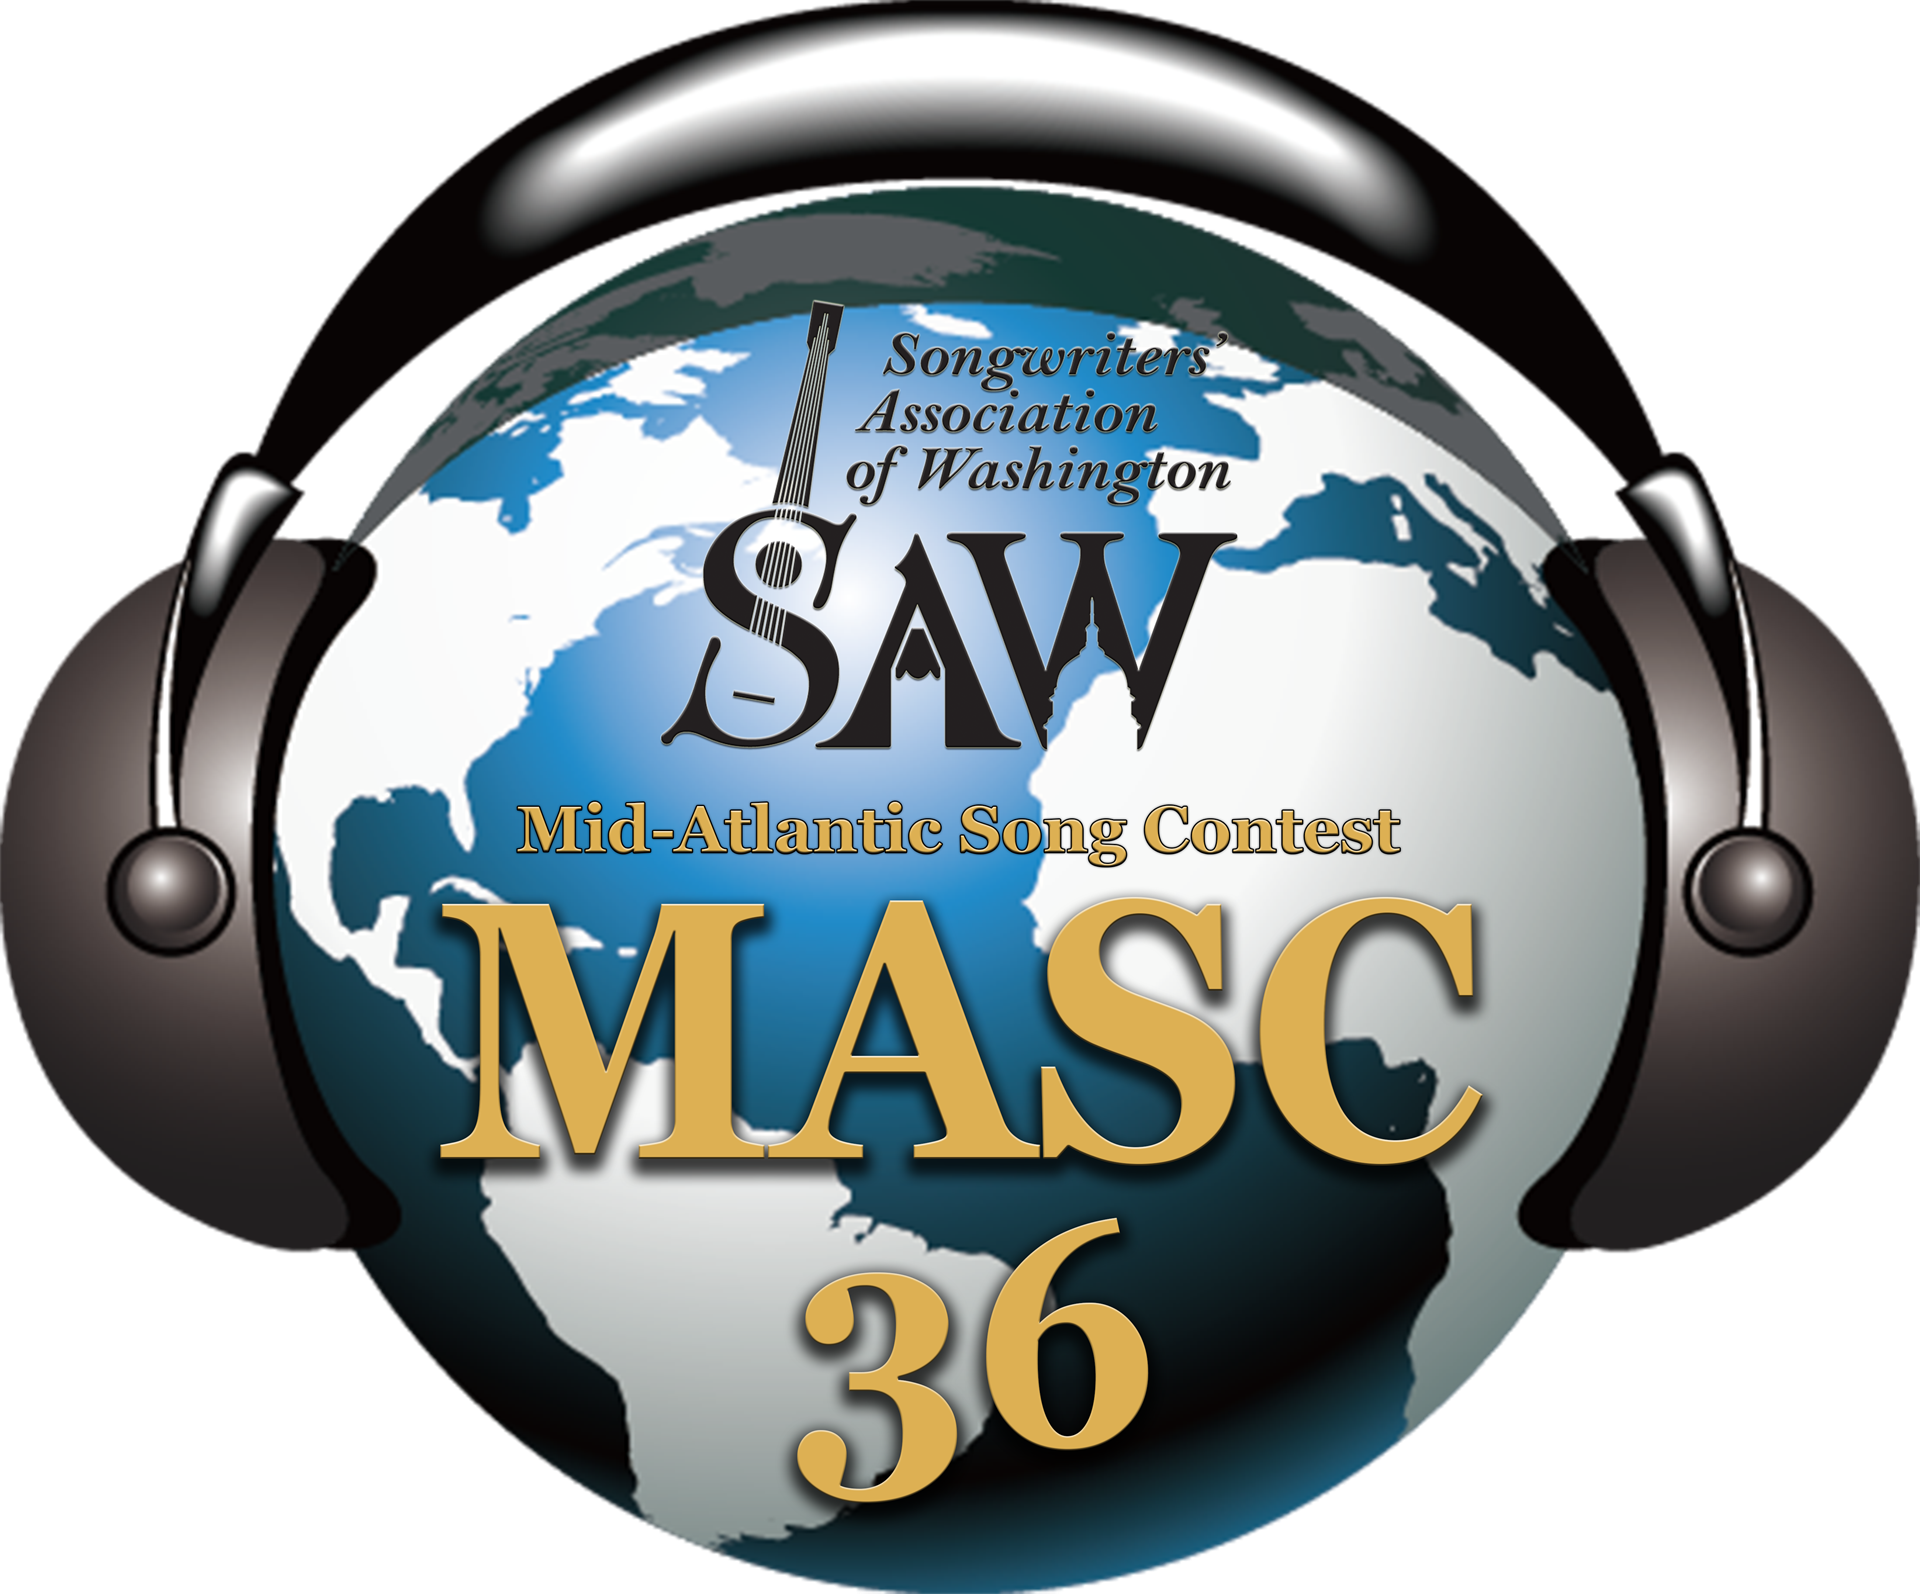 Songwriters Association of Washington - 2017 Results